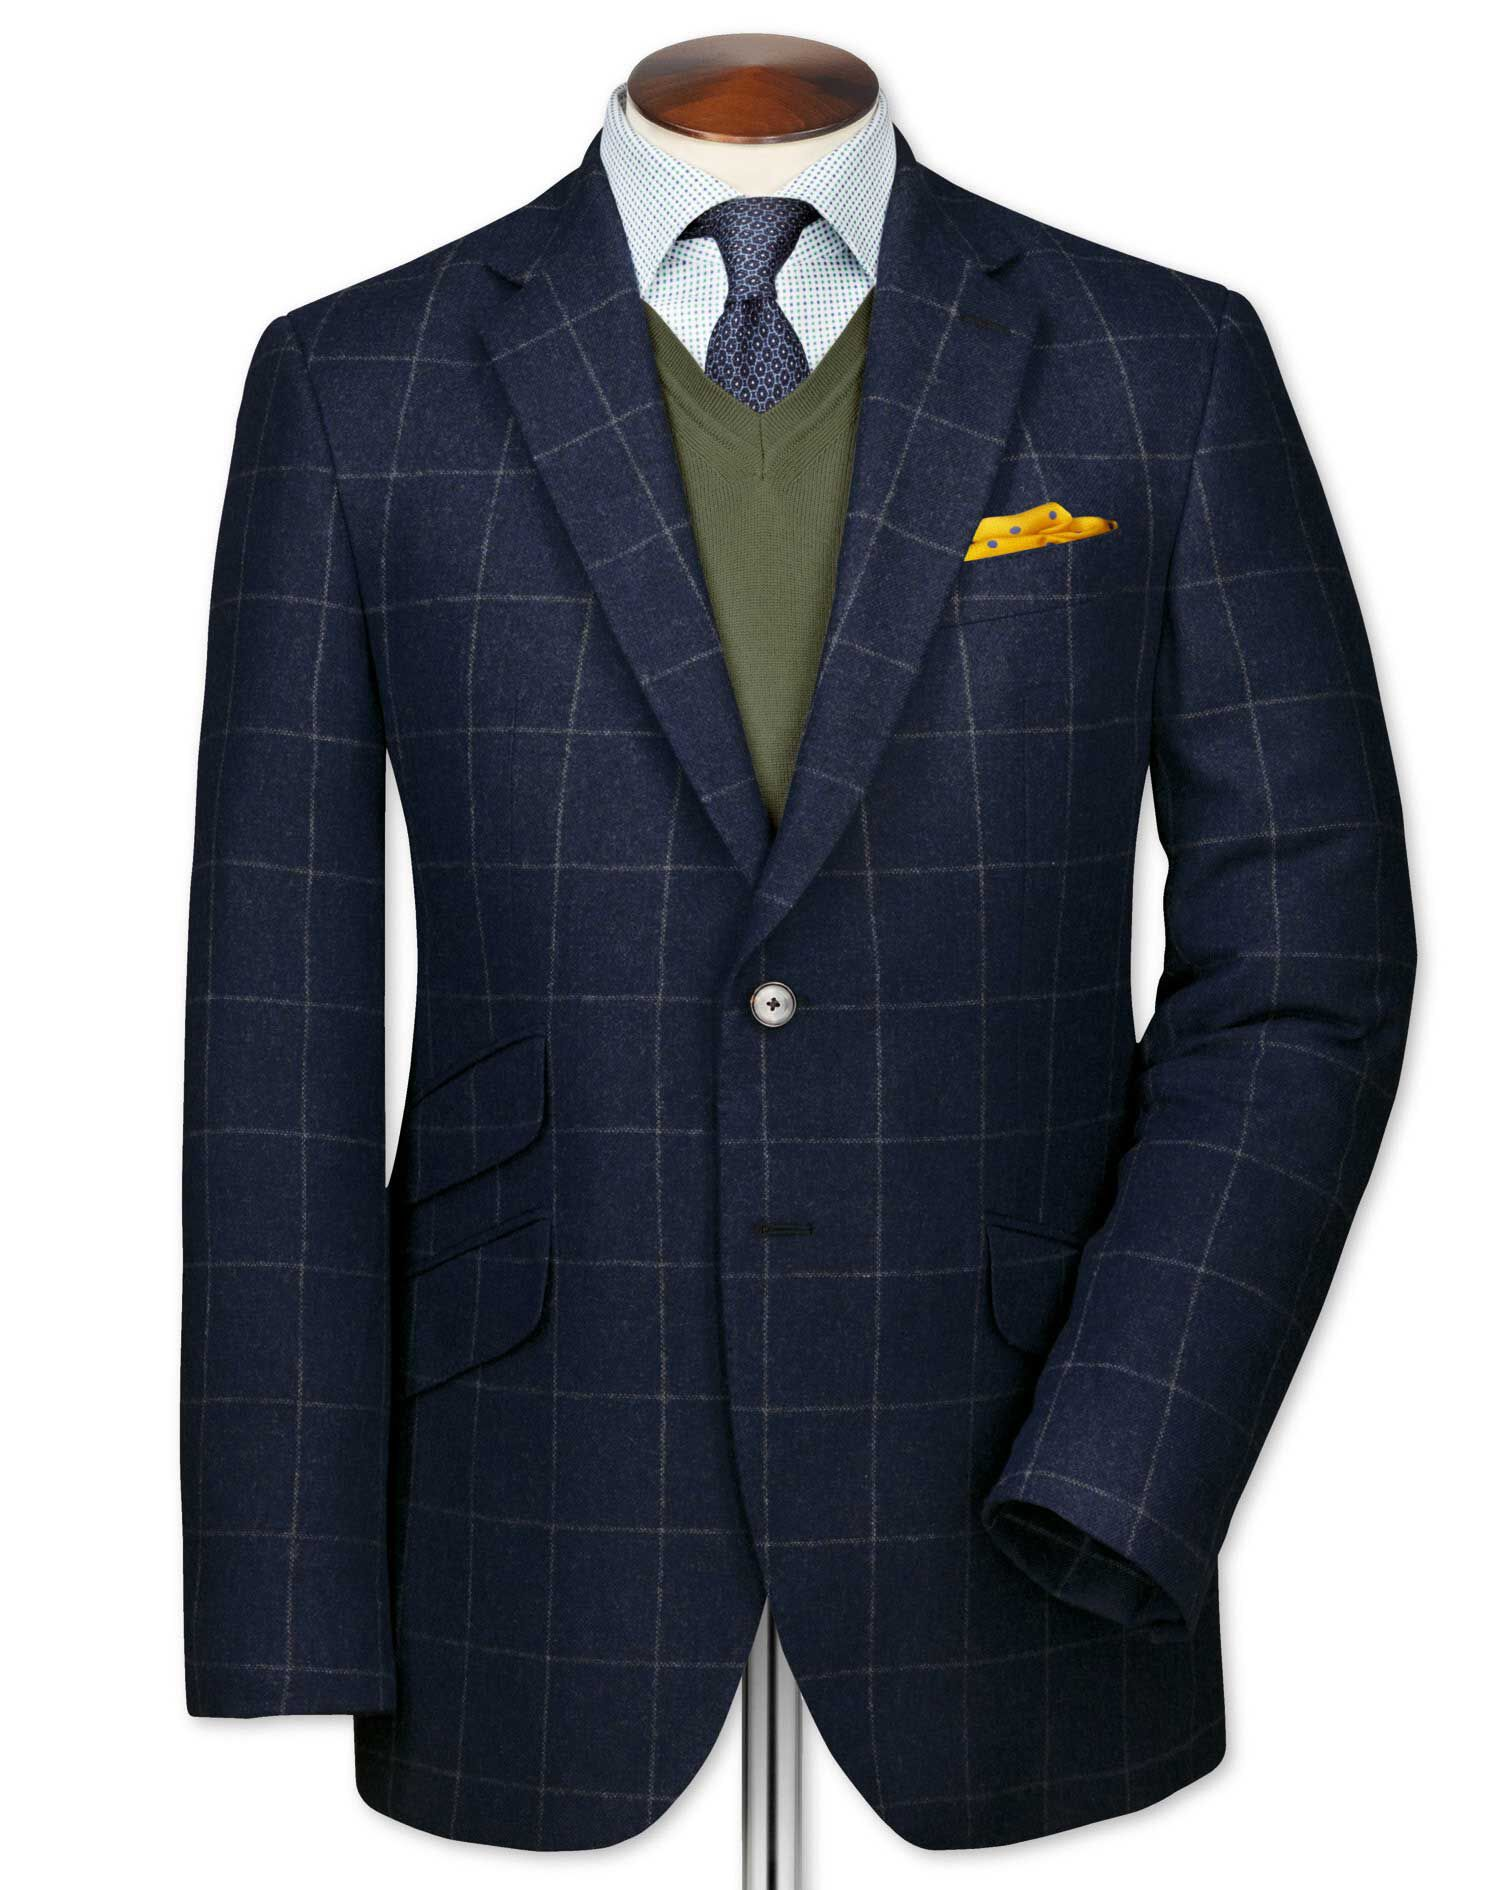 Classic Fit Blue Checkered Luxury Border Tweed Wool Jacket Size 40 Short by Charles Tyrwhitt